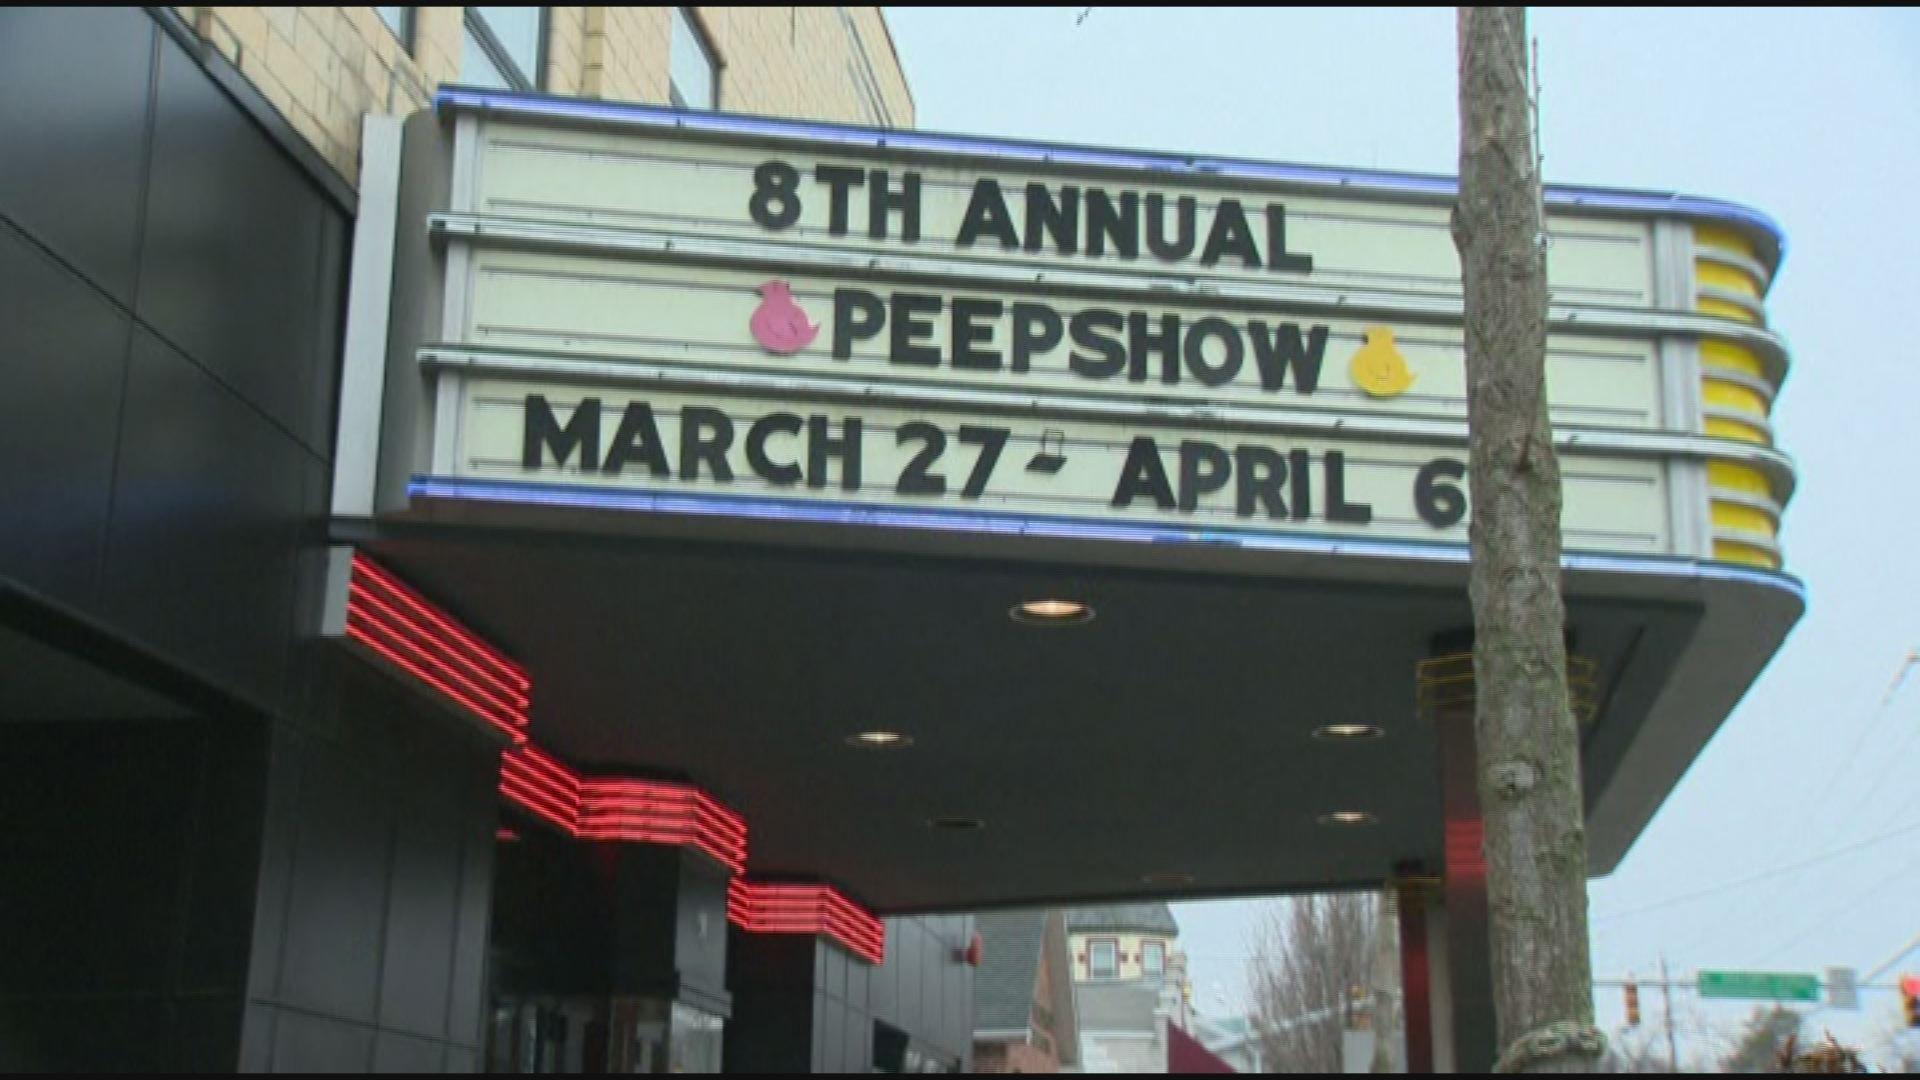 It's that time of the year for the Peep Show!